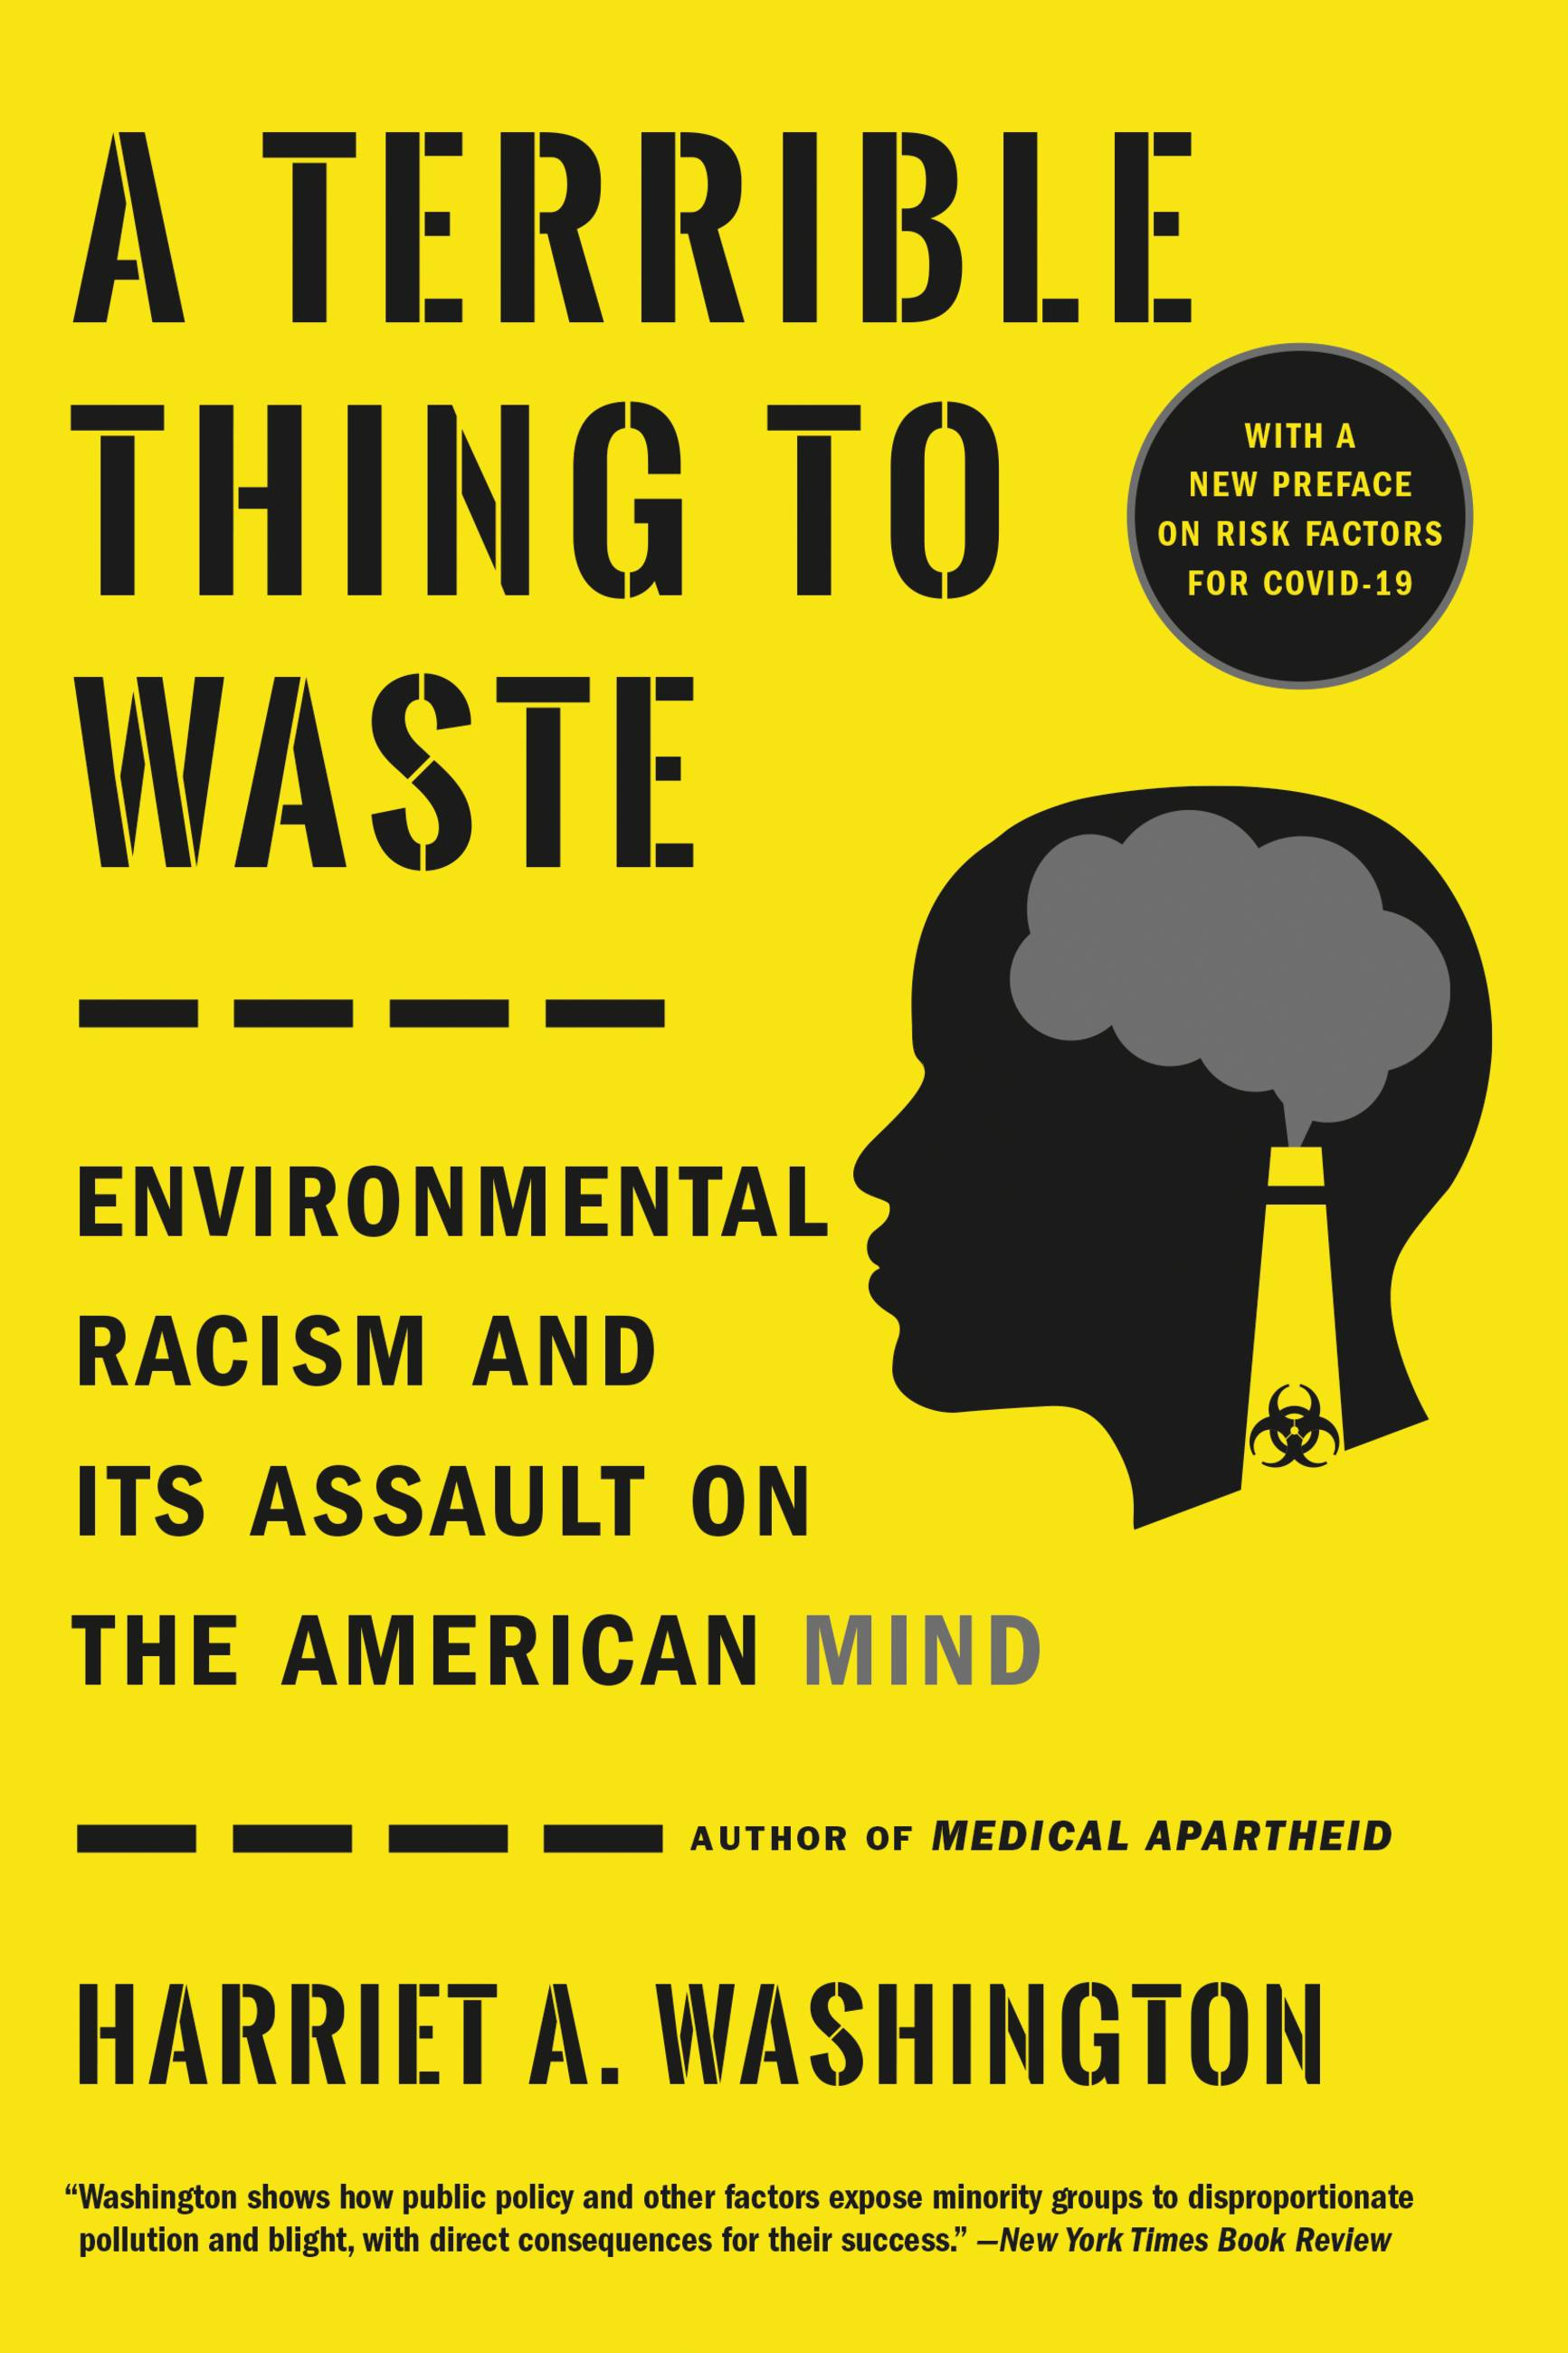 A Terrible Thing to Waste Environmental Racism and Its Assault on the American Mind